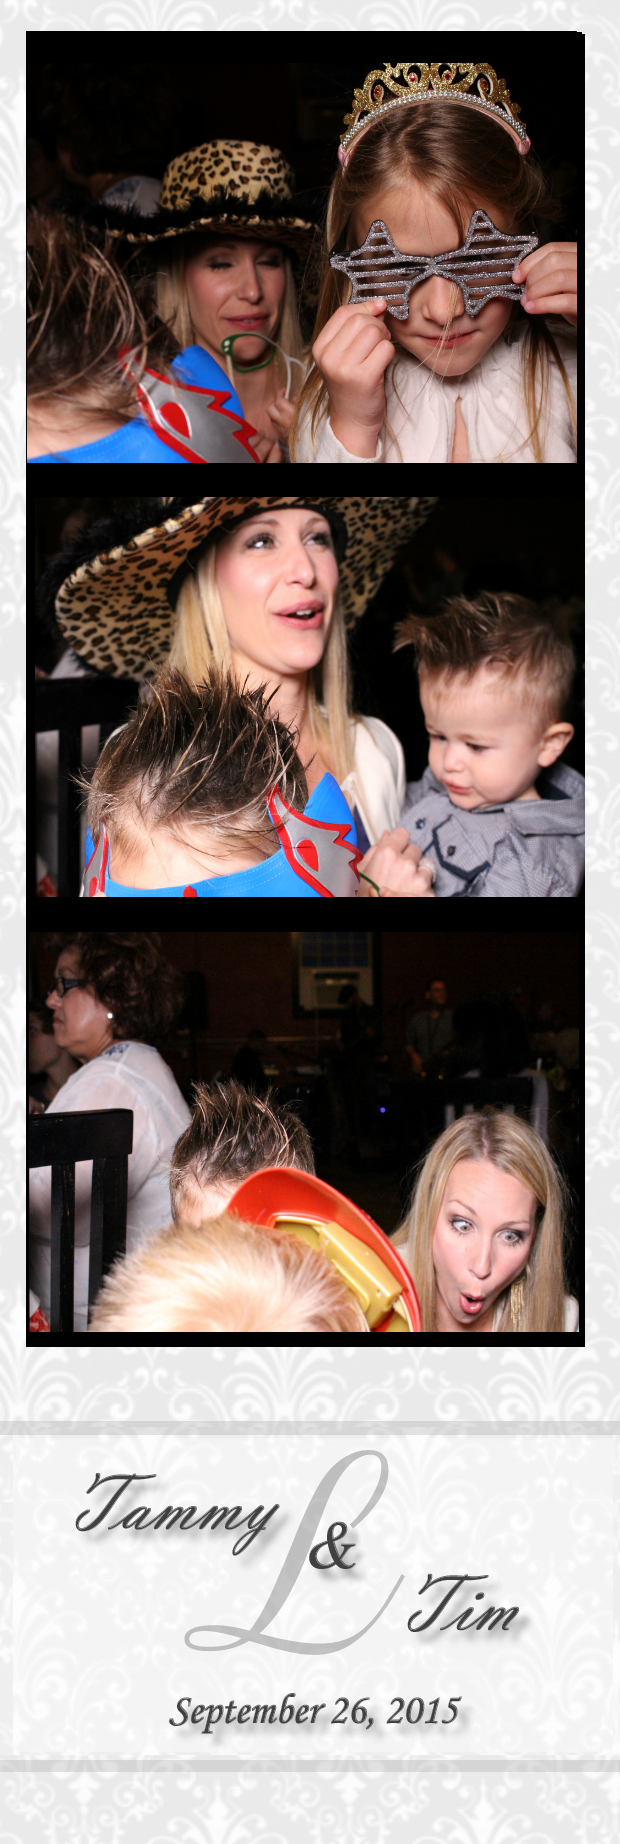 Guest House Events Photo Booth Strips T&T (9).jpg